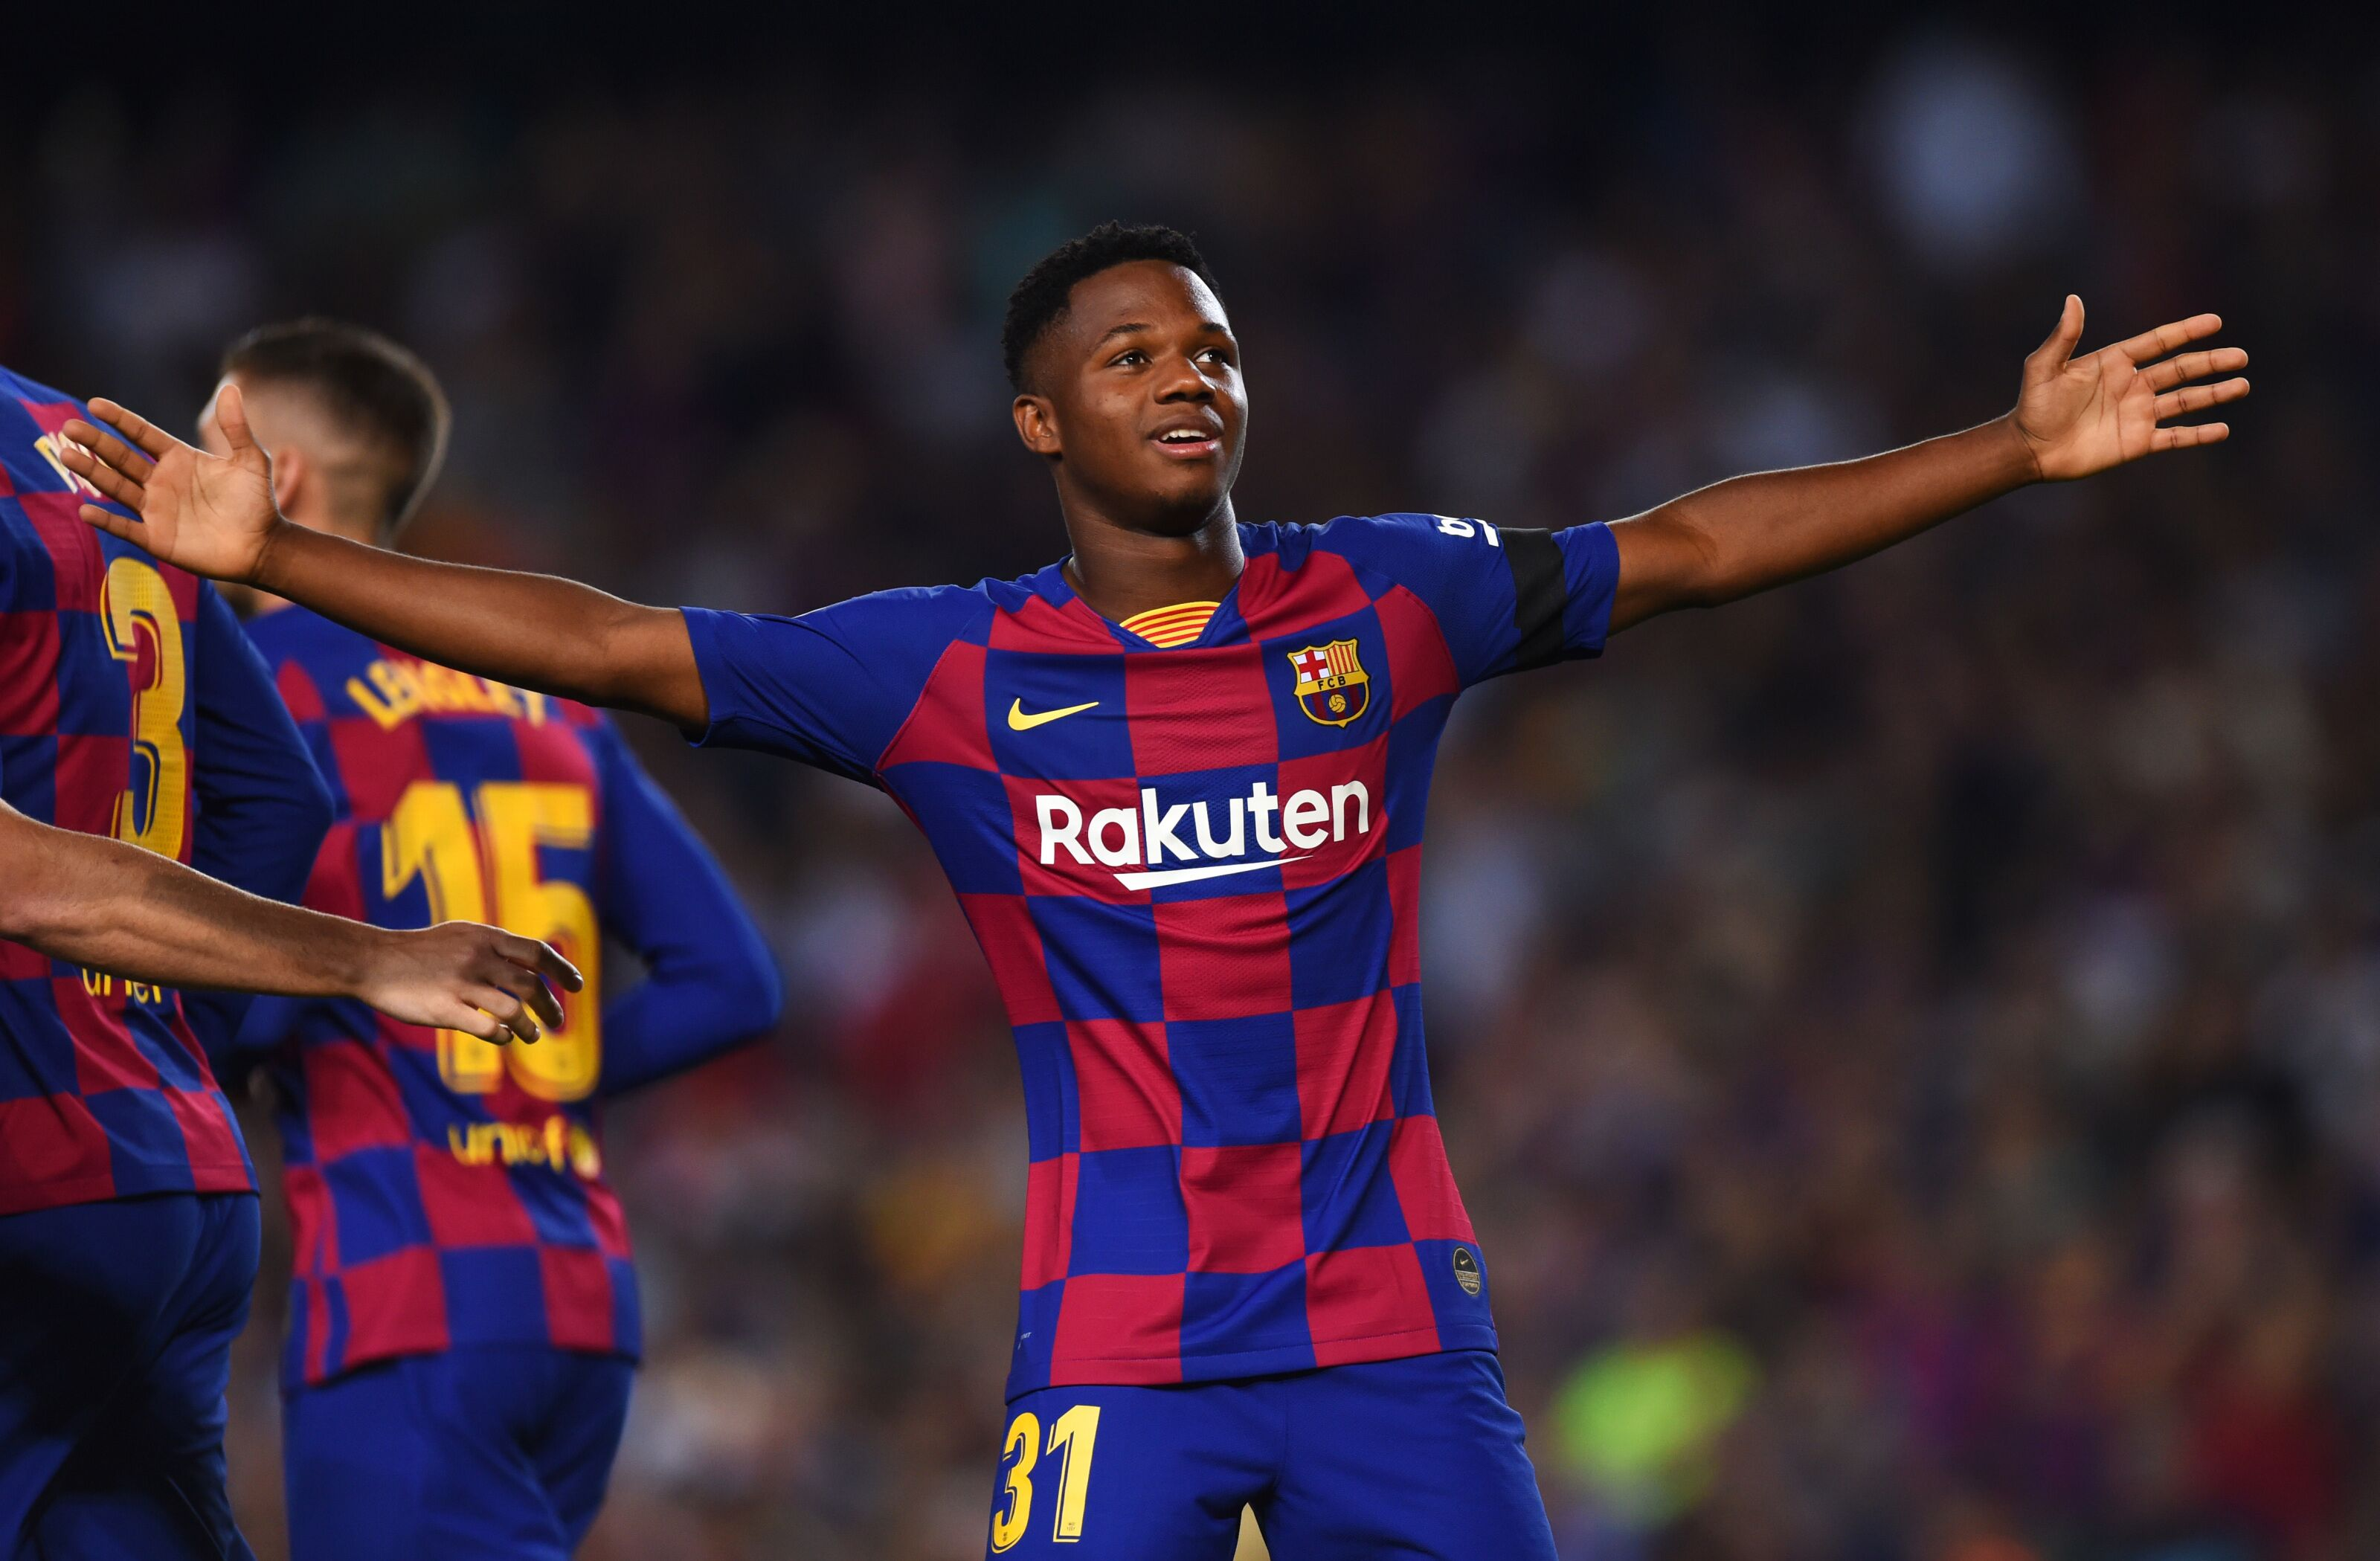 Neymar who? asks Barcelona's mercurial new talent